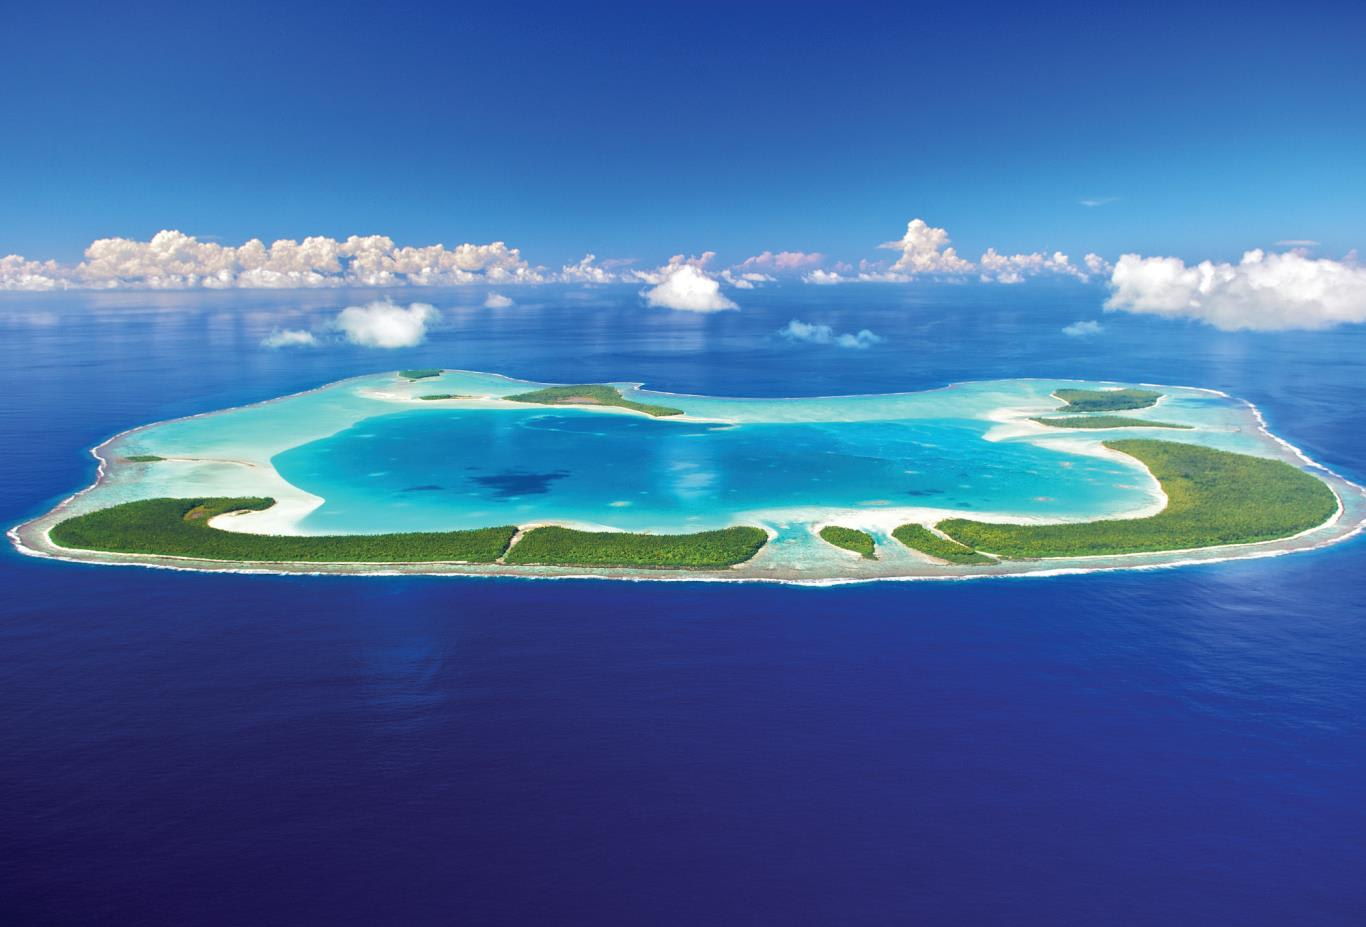 Tetiaroa, Home of the Brando